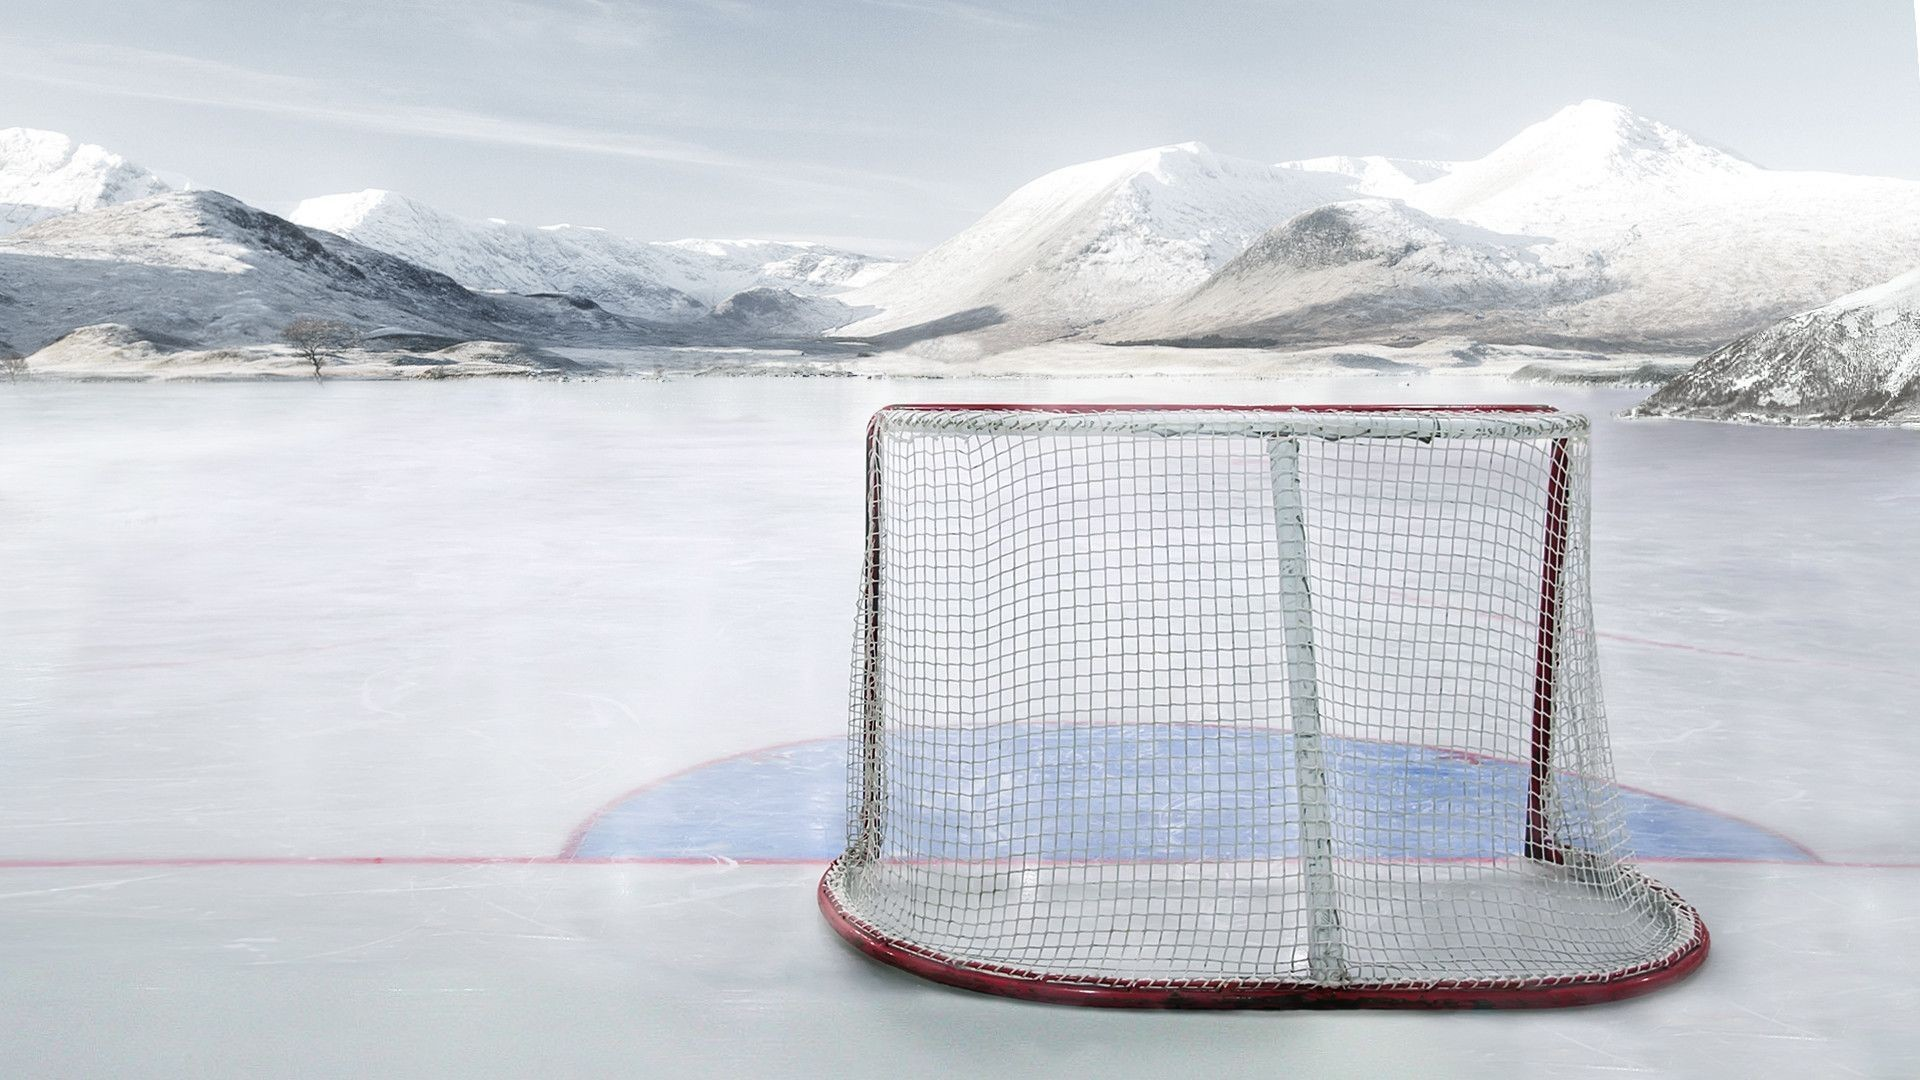 I created a hockey wallpaper. Pick what ever style you want. : hockey